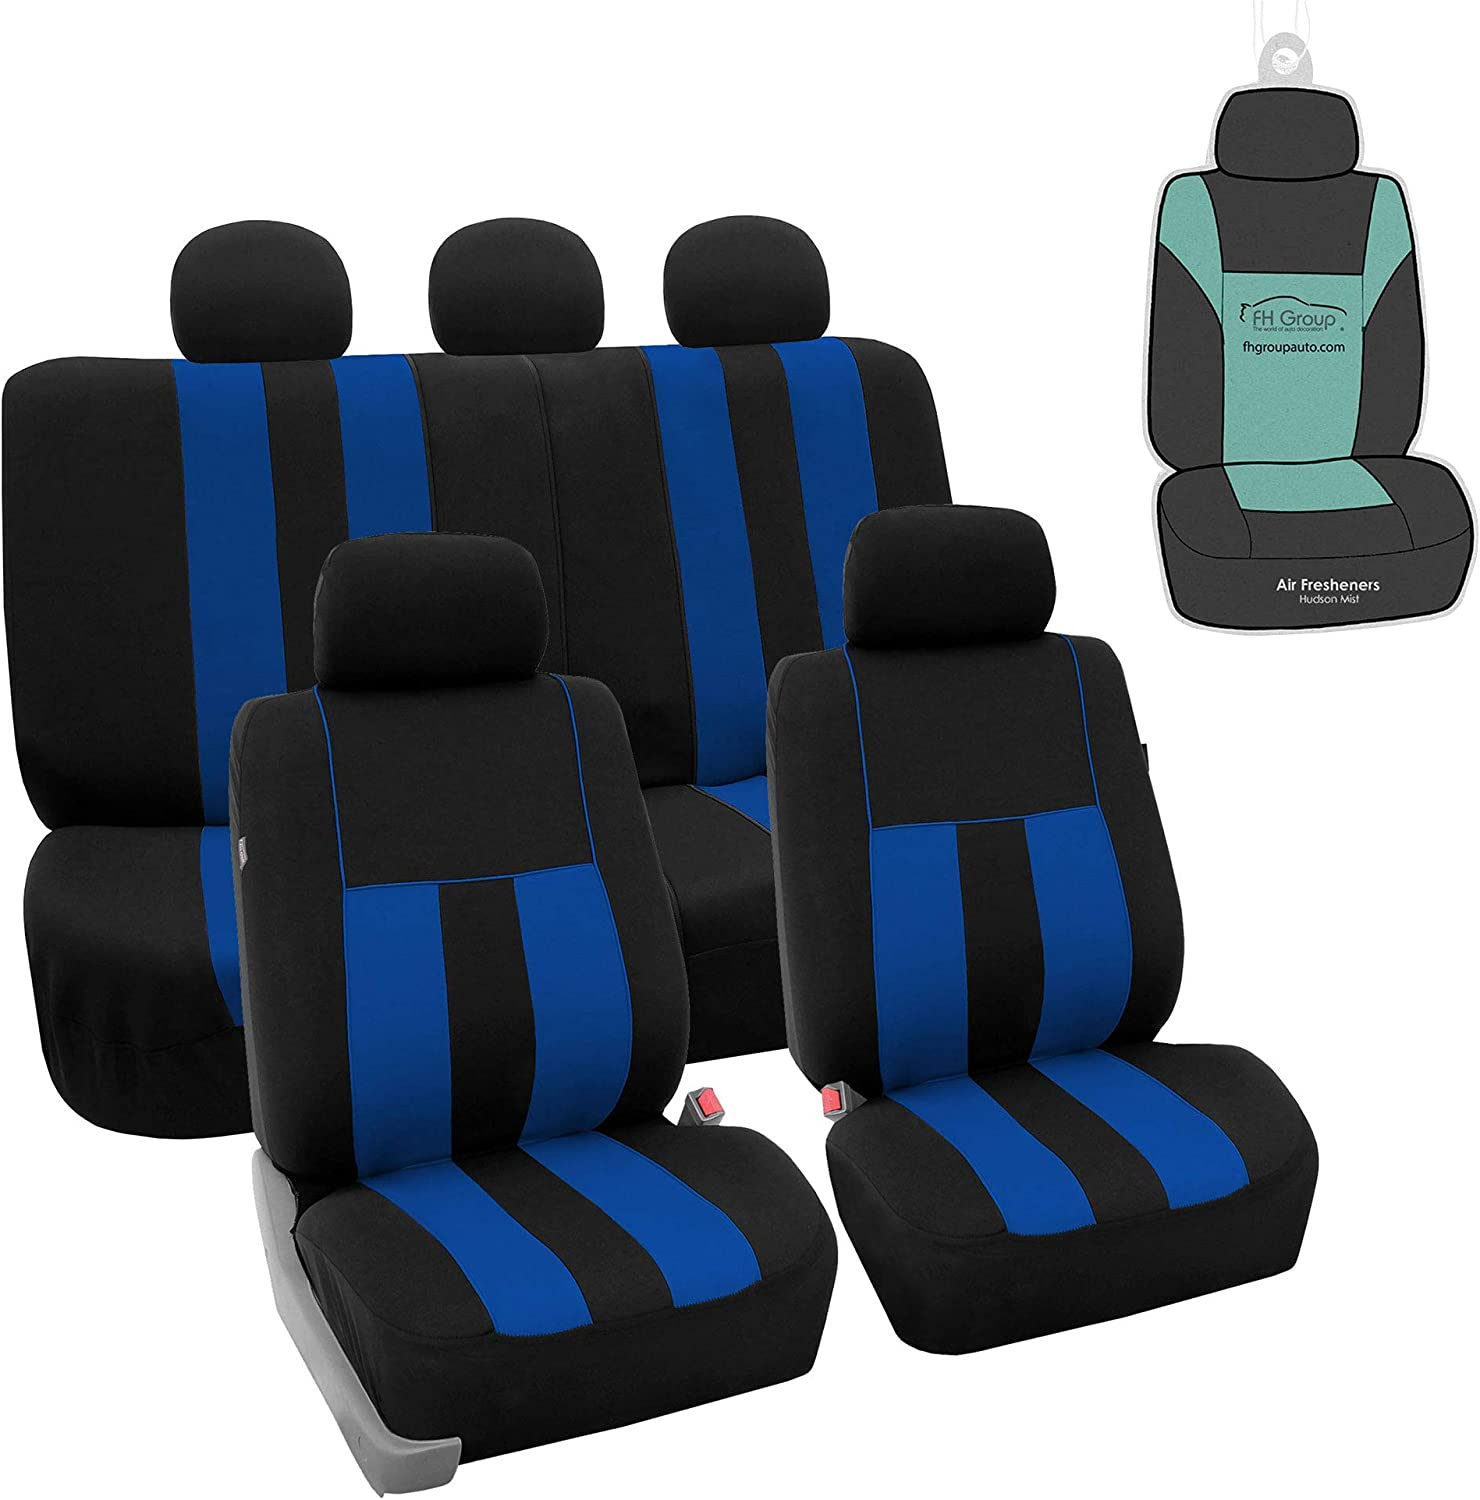 FH Group FB036115 Striking Striped Seat Covers (Blue) Full Set with Gift – Universal Fit for Cars Trucks & SUVs